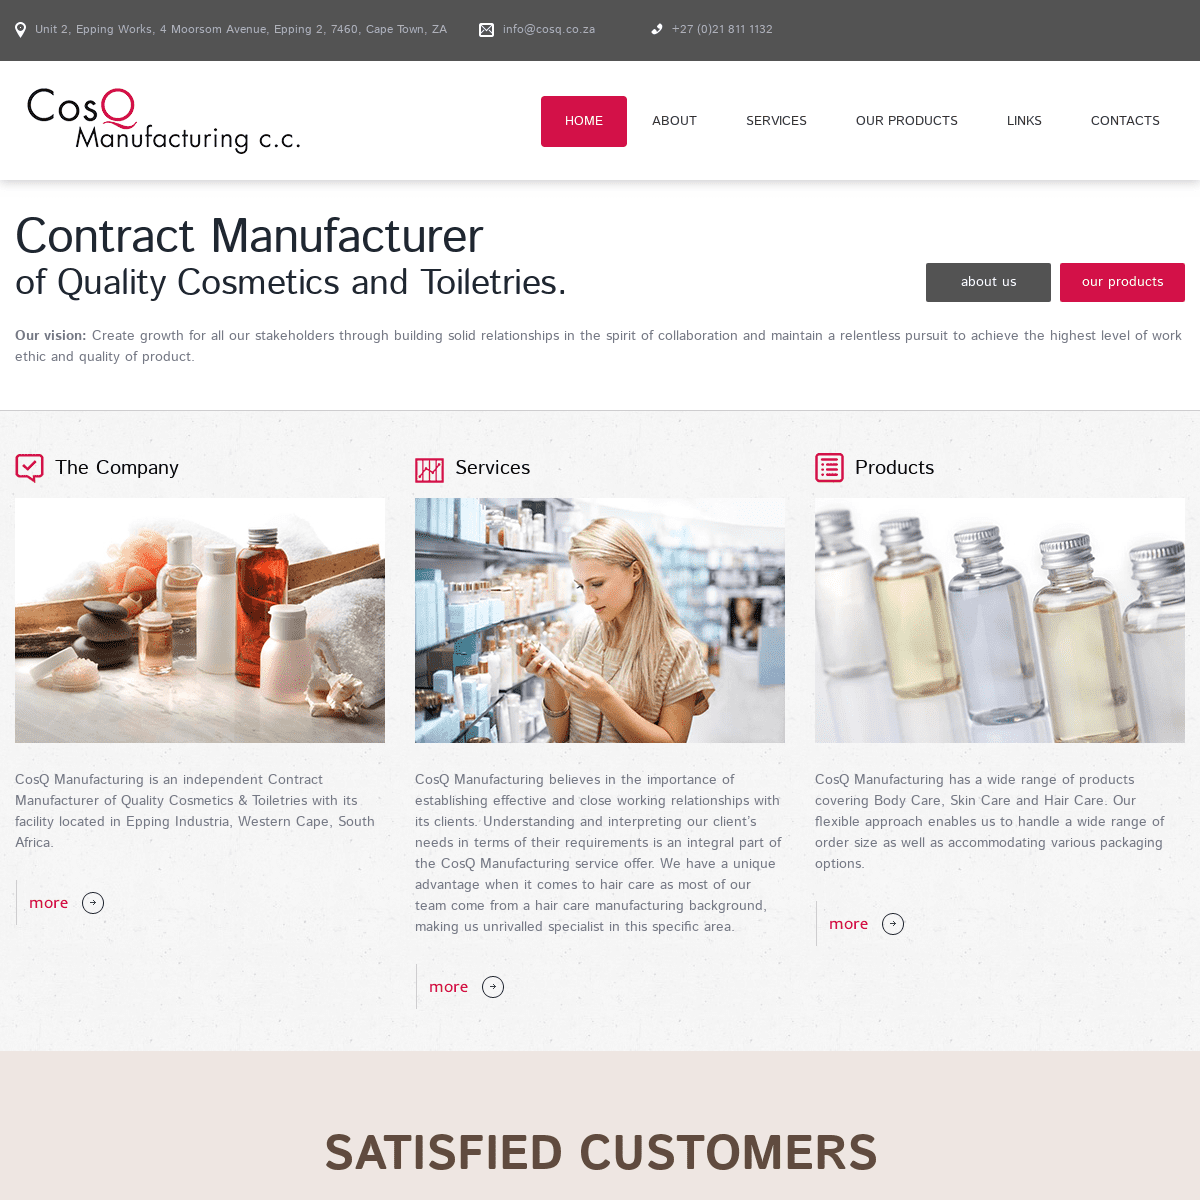 CosQ Manufacturing c.c. - Contract Manufacturer of Quality Cosmetics and Toiletries